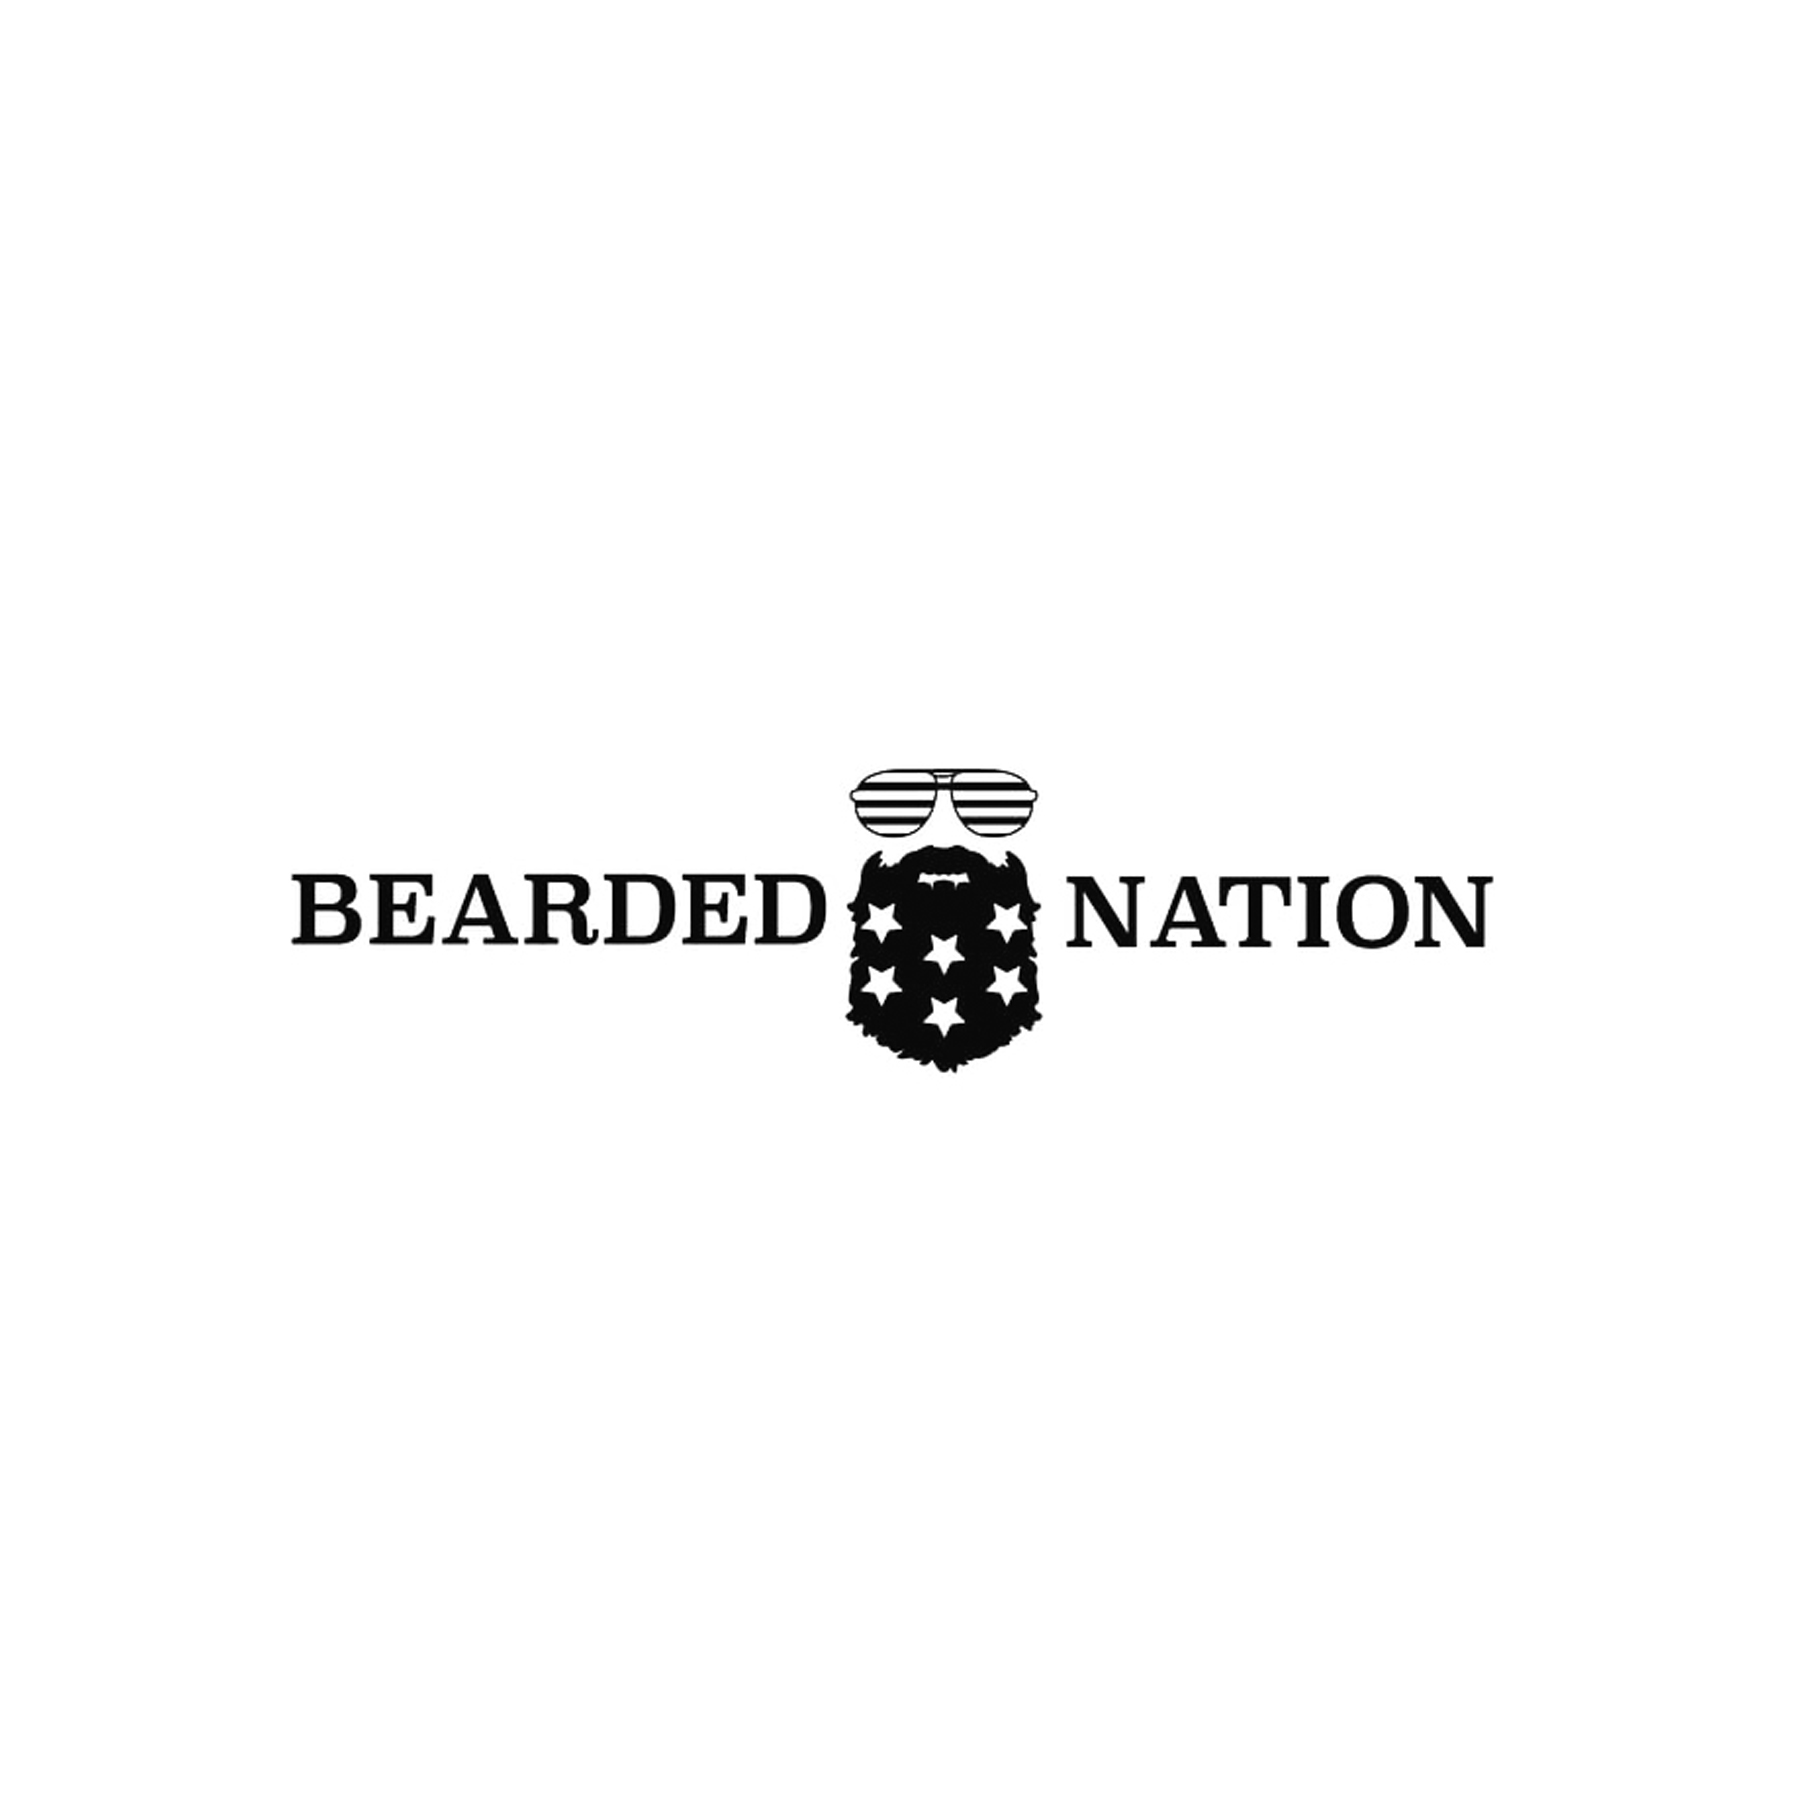 Bearded_Nation_Logo-01 copy.jpg